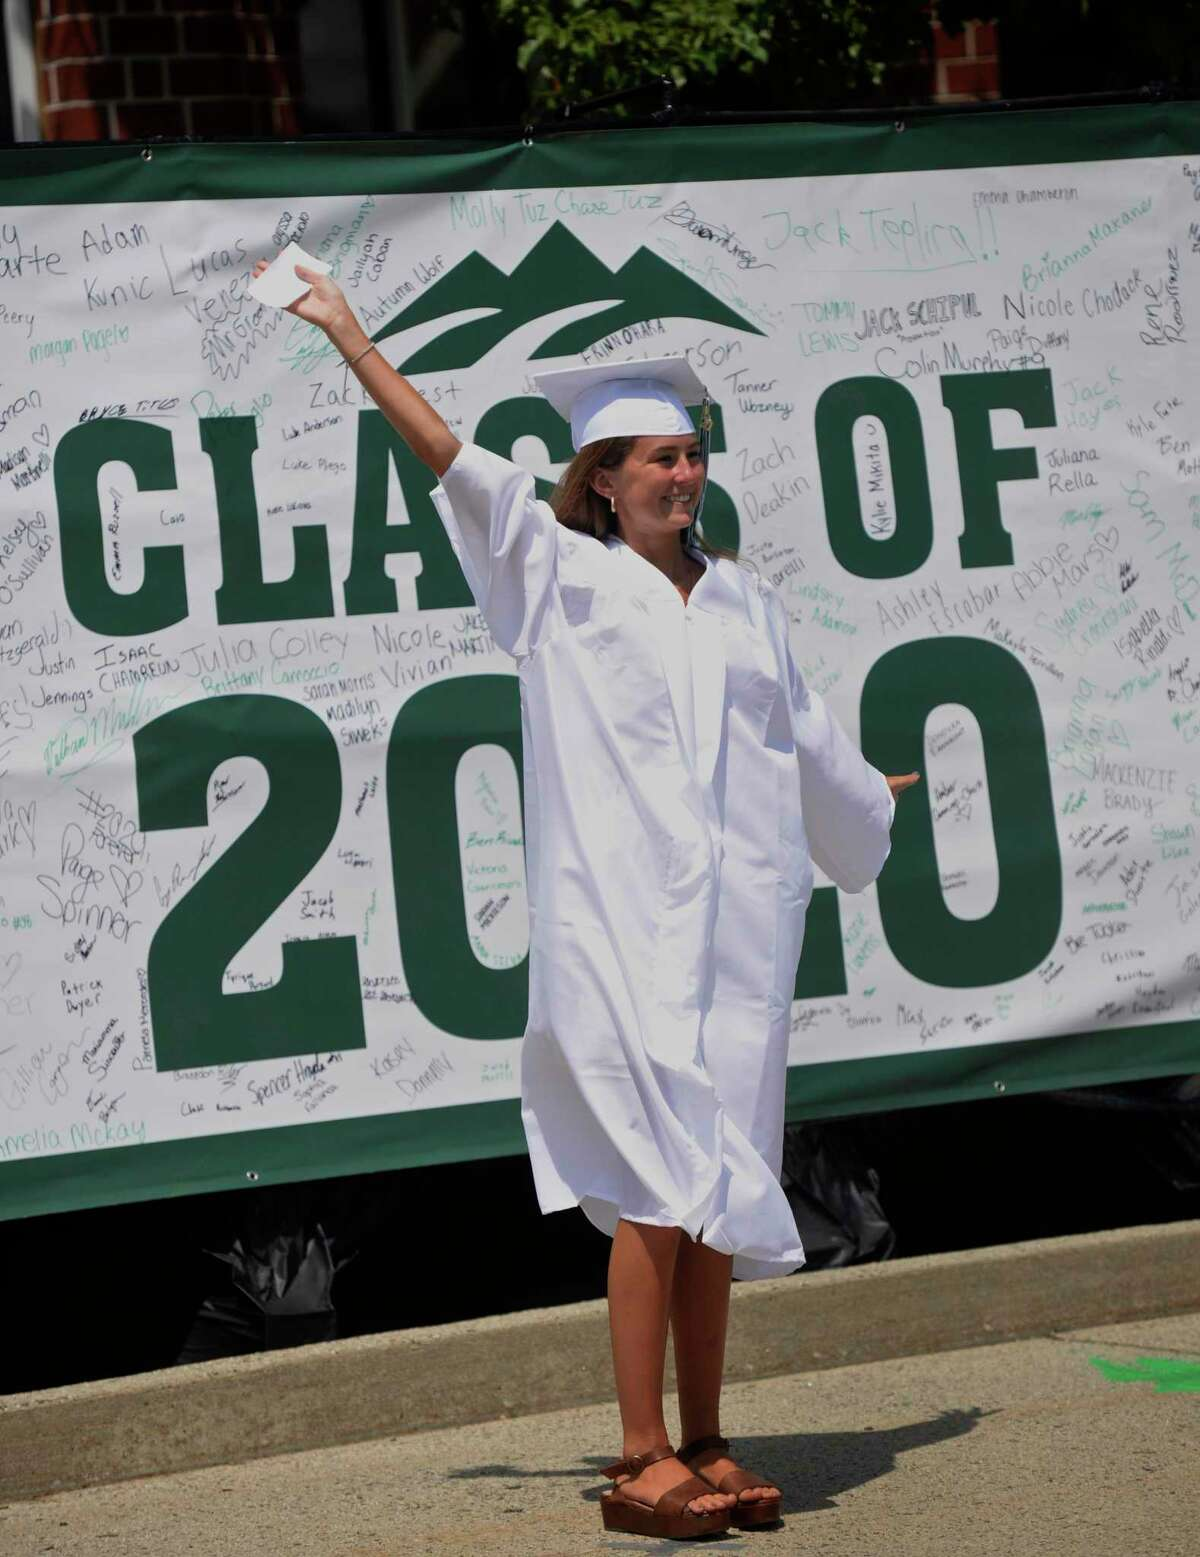 Graduate Erinn Elizabeth O'Hara poses for a photograph at the 2020 New Milford High School graduation ceremony on Saturday. The graduates paraded from Sarah Noble Intermediate School to the high school and walked the sidewalk to receive their diplomas. June 20, 2020, in New Milford, Conn.